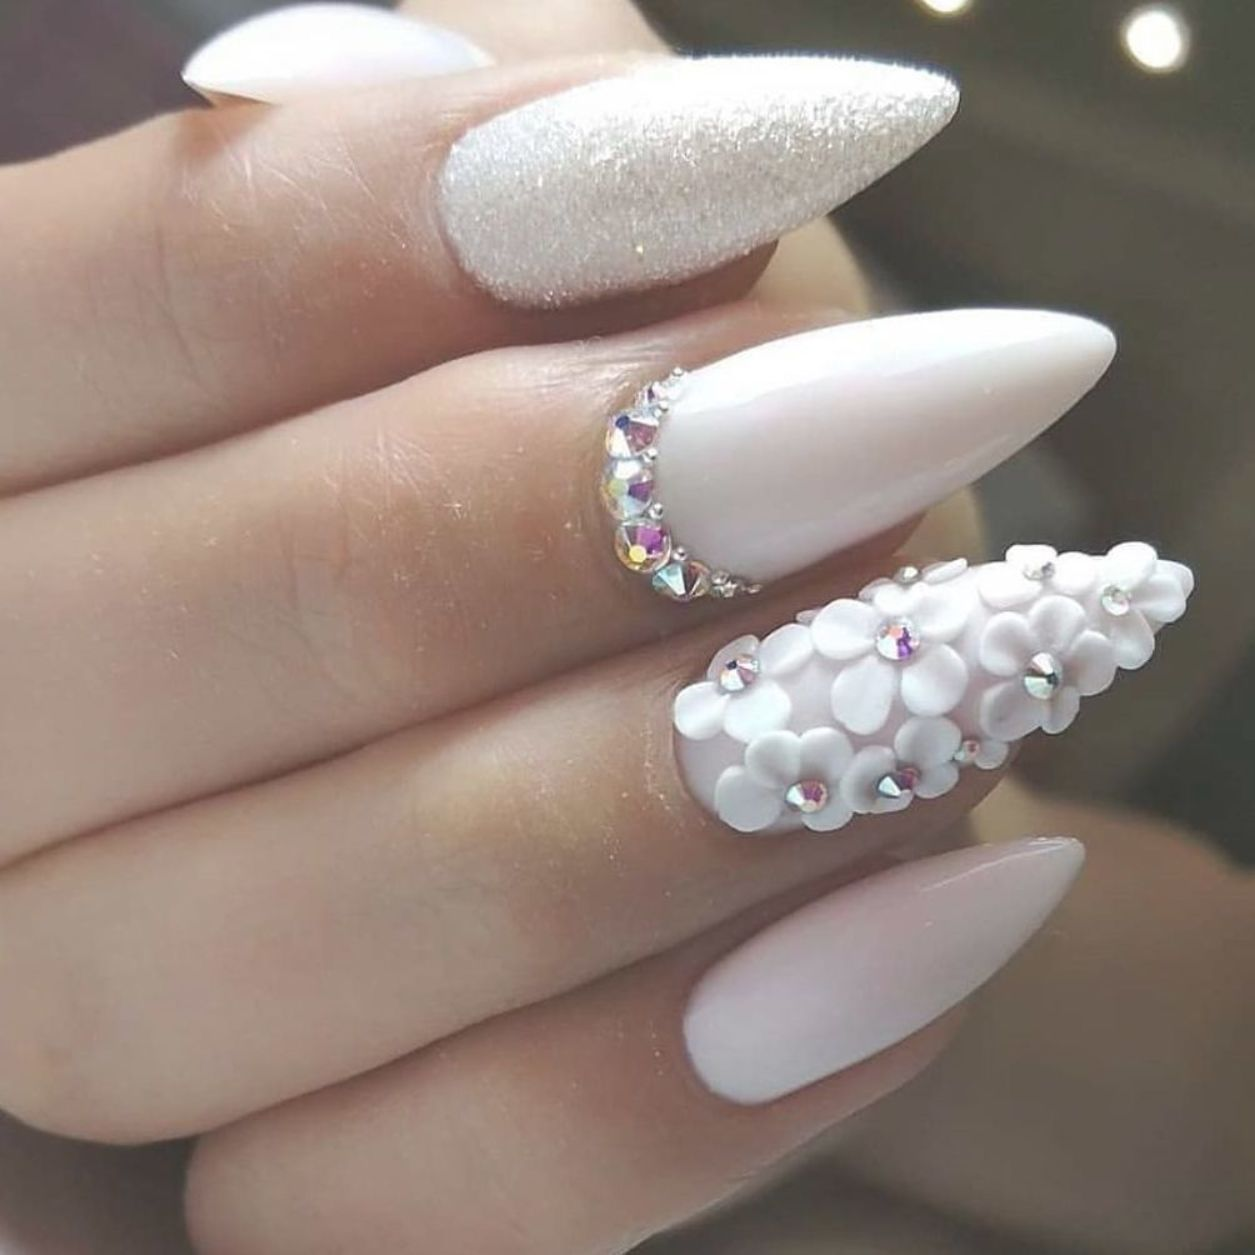 Pokadot Nails For Wedding nails are an art expression to many brides nowadays with Beautiful Design Picture Credit #nails #nailstagram #nailsofinstagram #notpolish #manicure #artnails#fashionnails #nailart